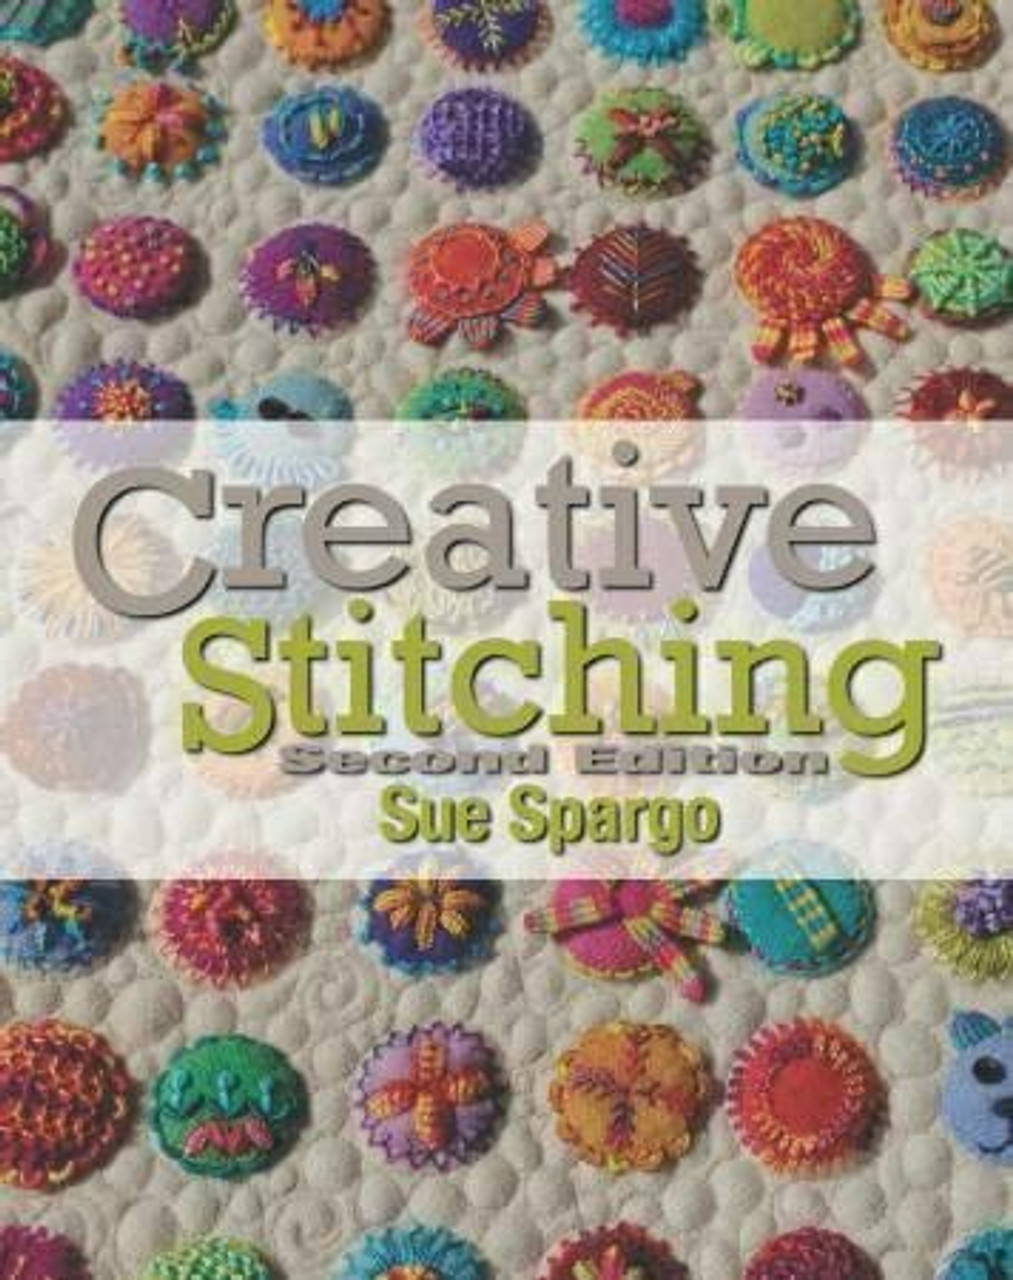 Sue Spargo: Creative Stitching 2nd Edition